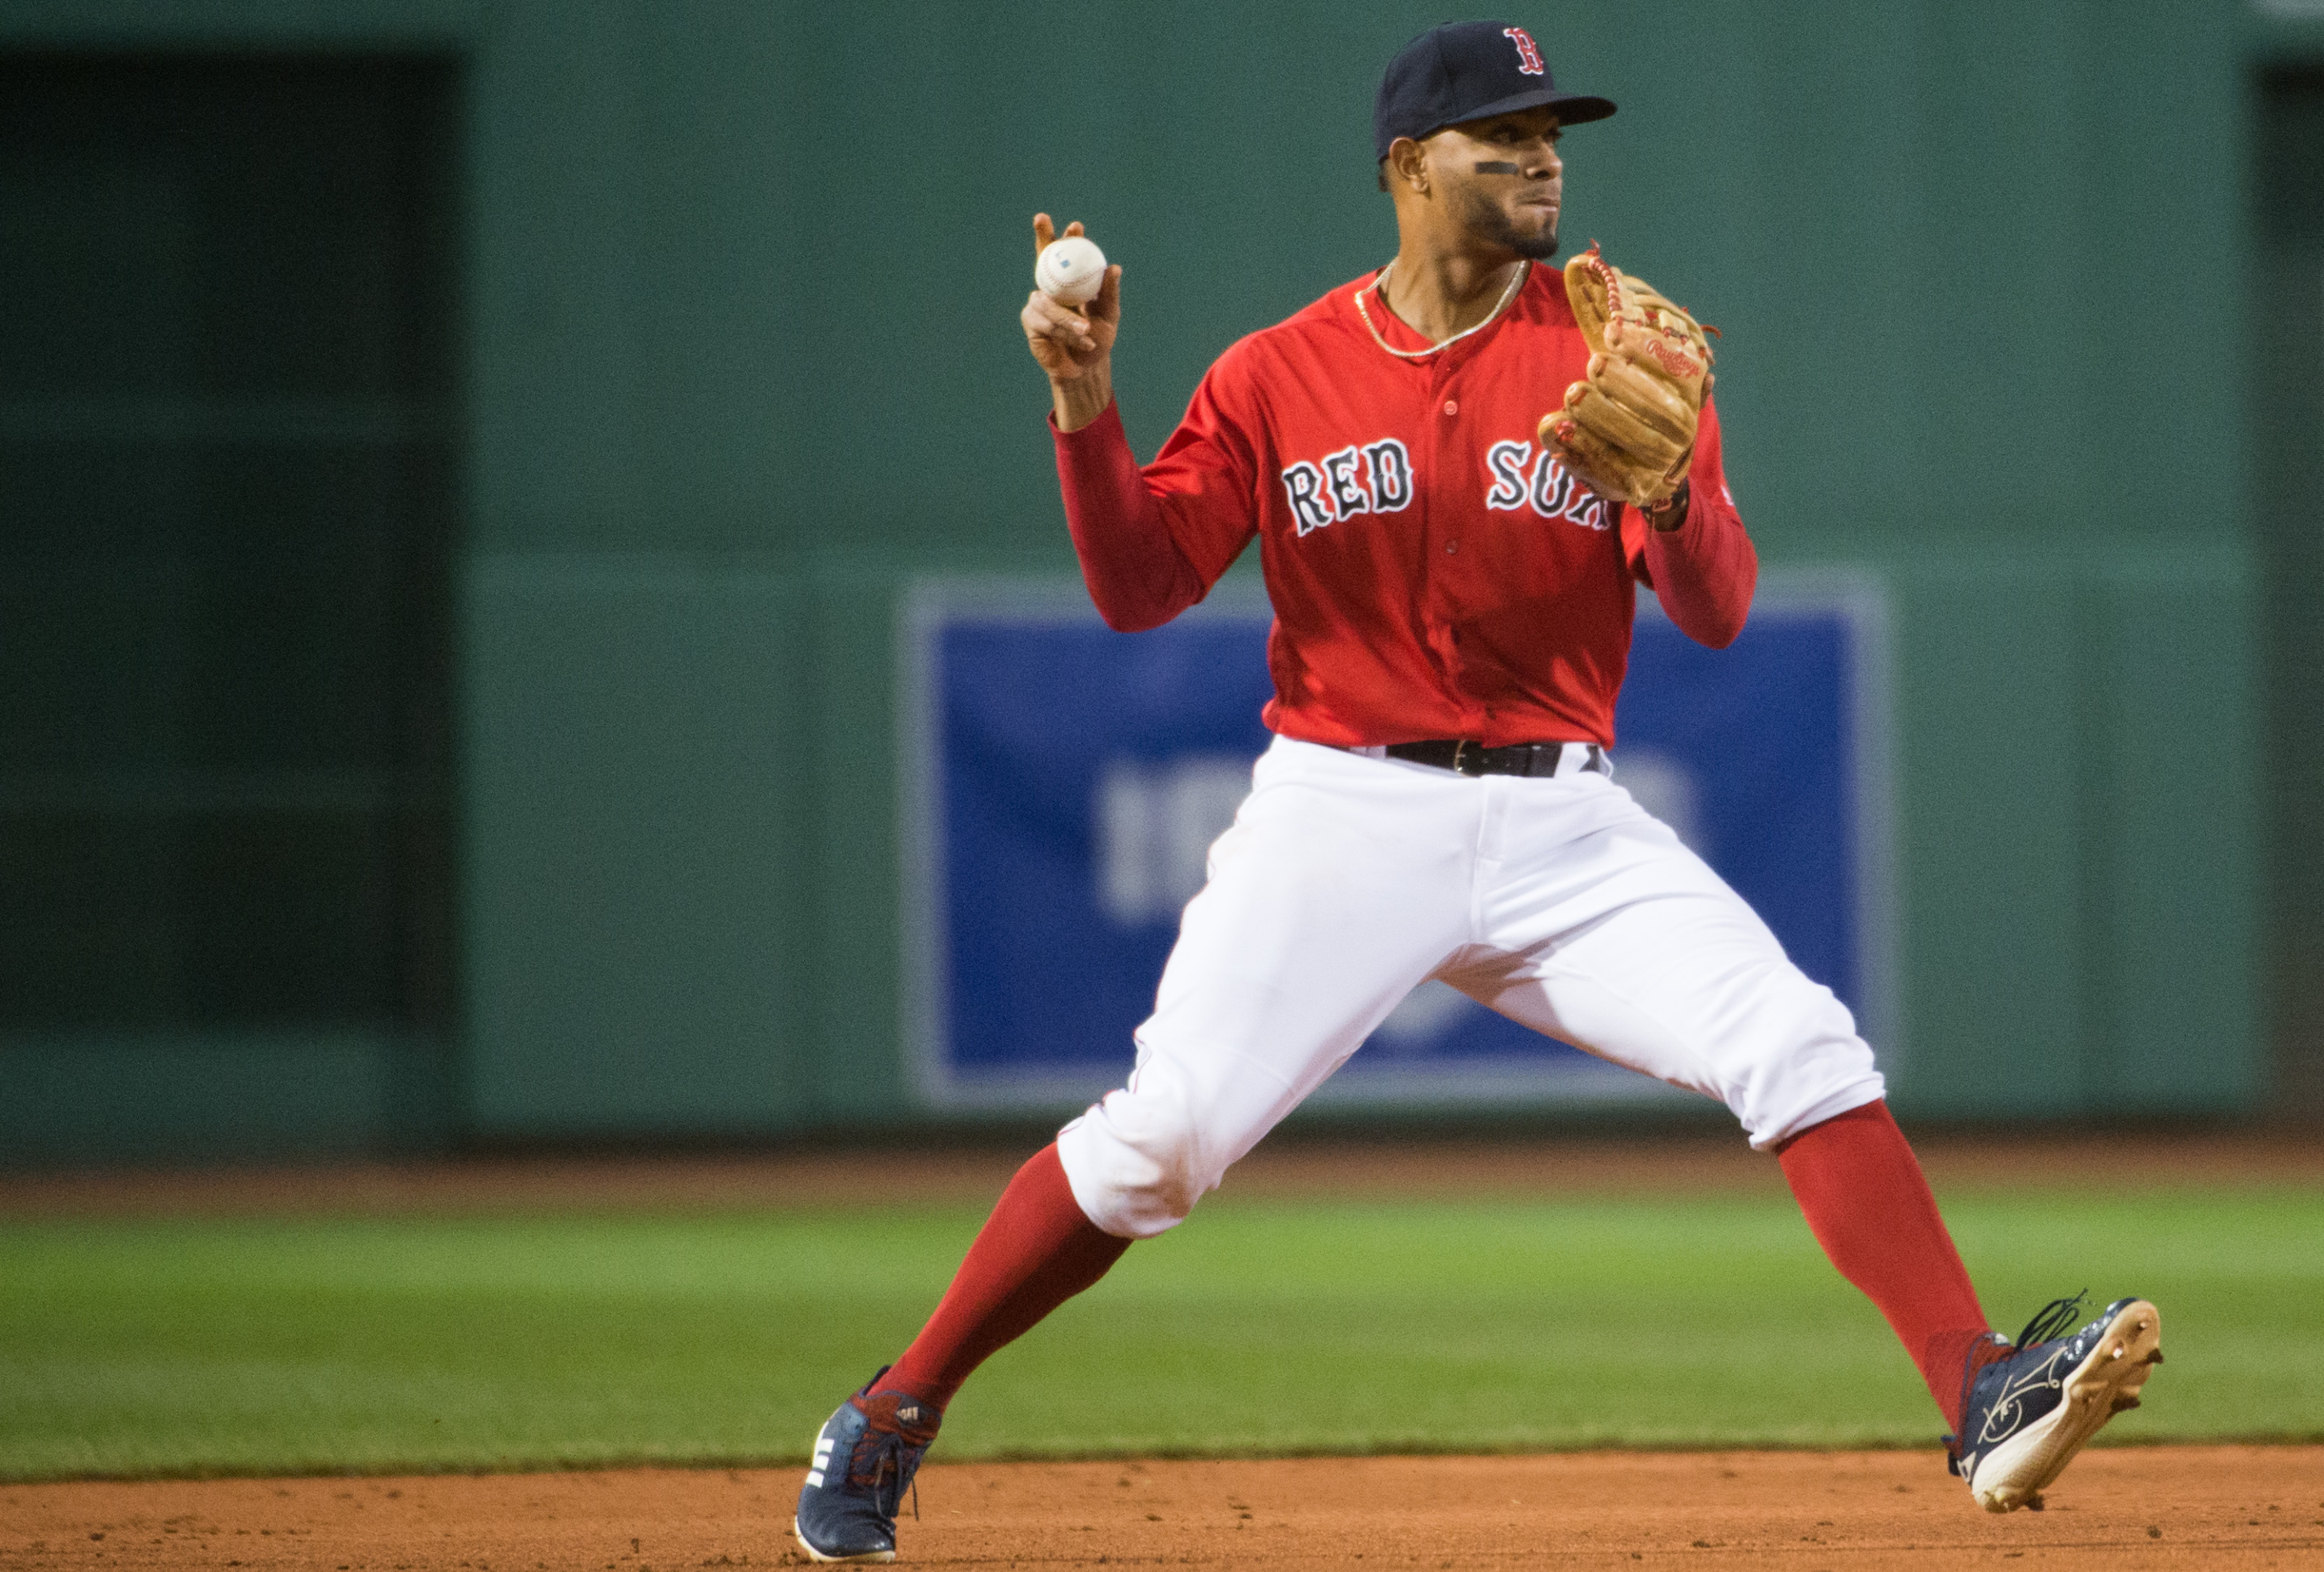 Xander Bogaerts has been a Red Sox for a long time and should continue to be one.